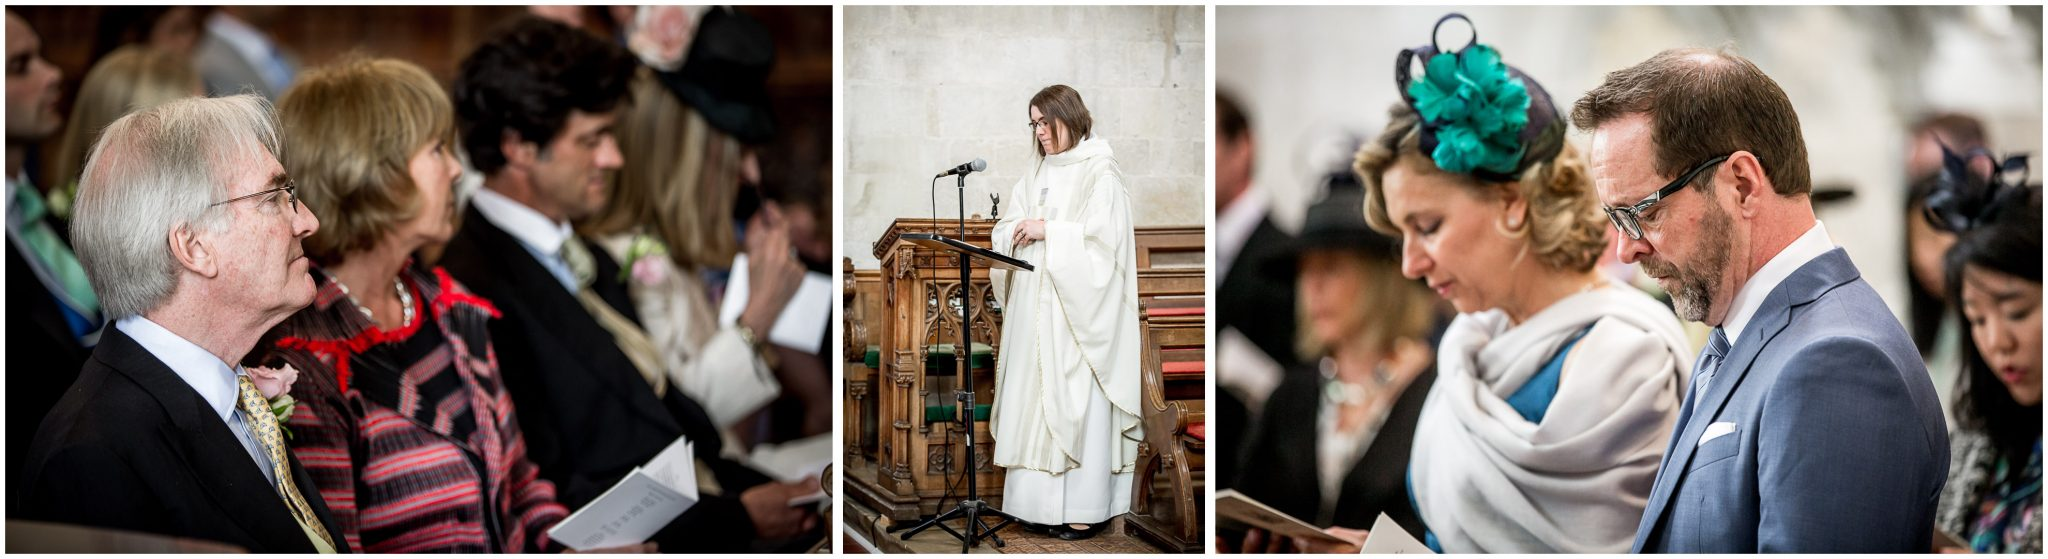 Wedding service at Milton Abbey